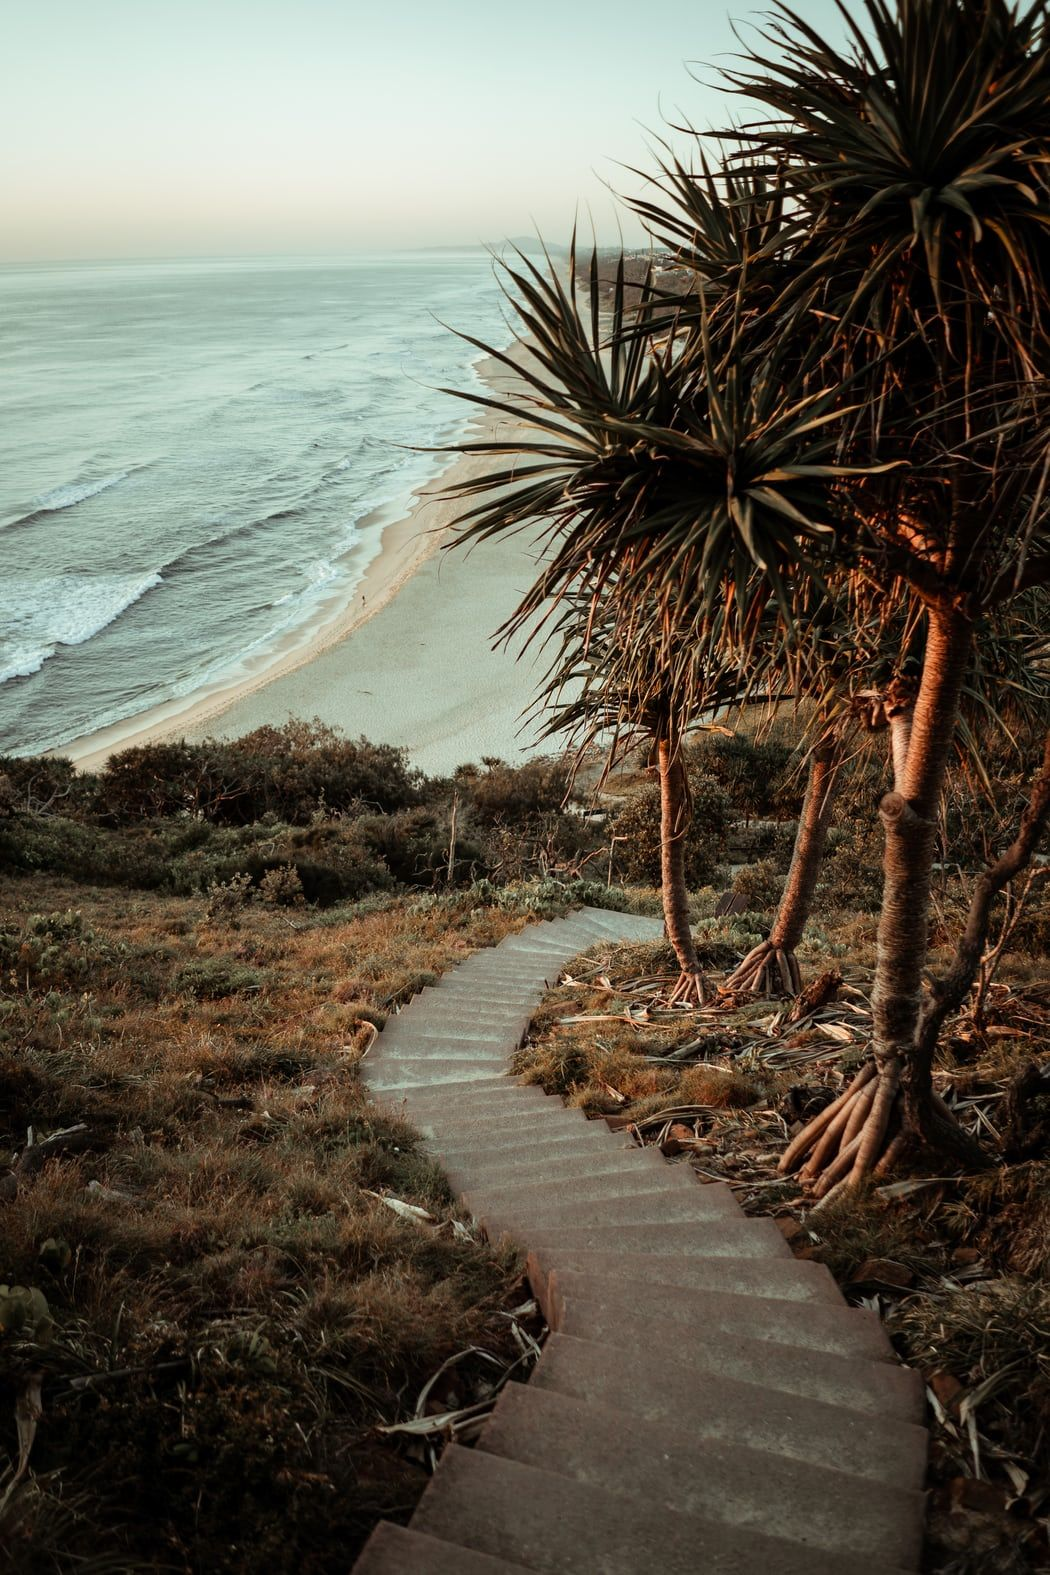 Green Palm Tree Near Sea During Daytime Photo Free Plant Image On Unsplash In 2020 Nature Photography Travel Aesthetic Photo